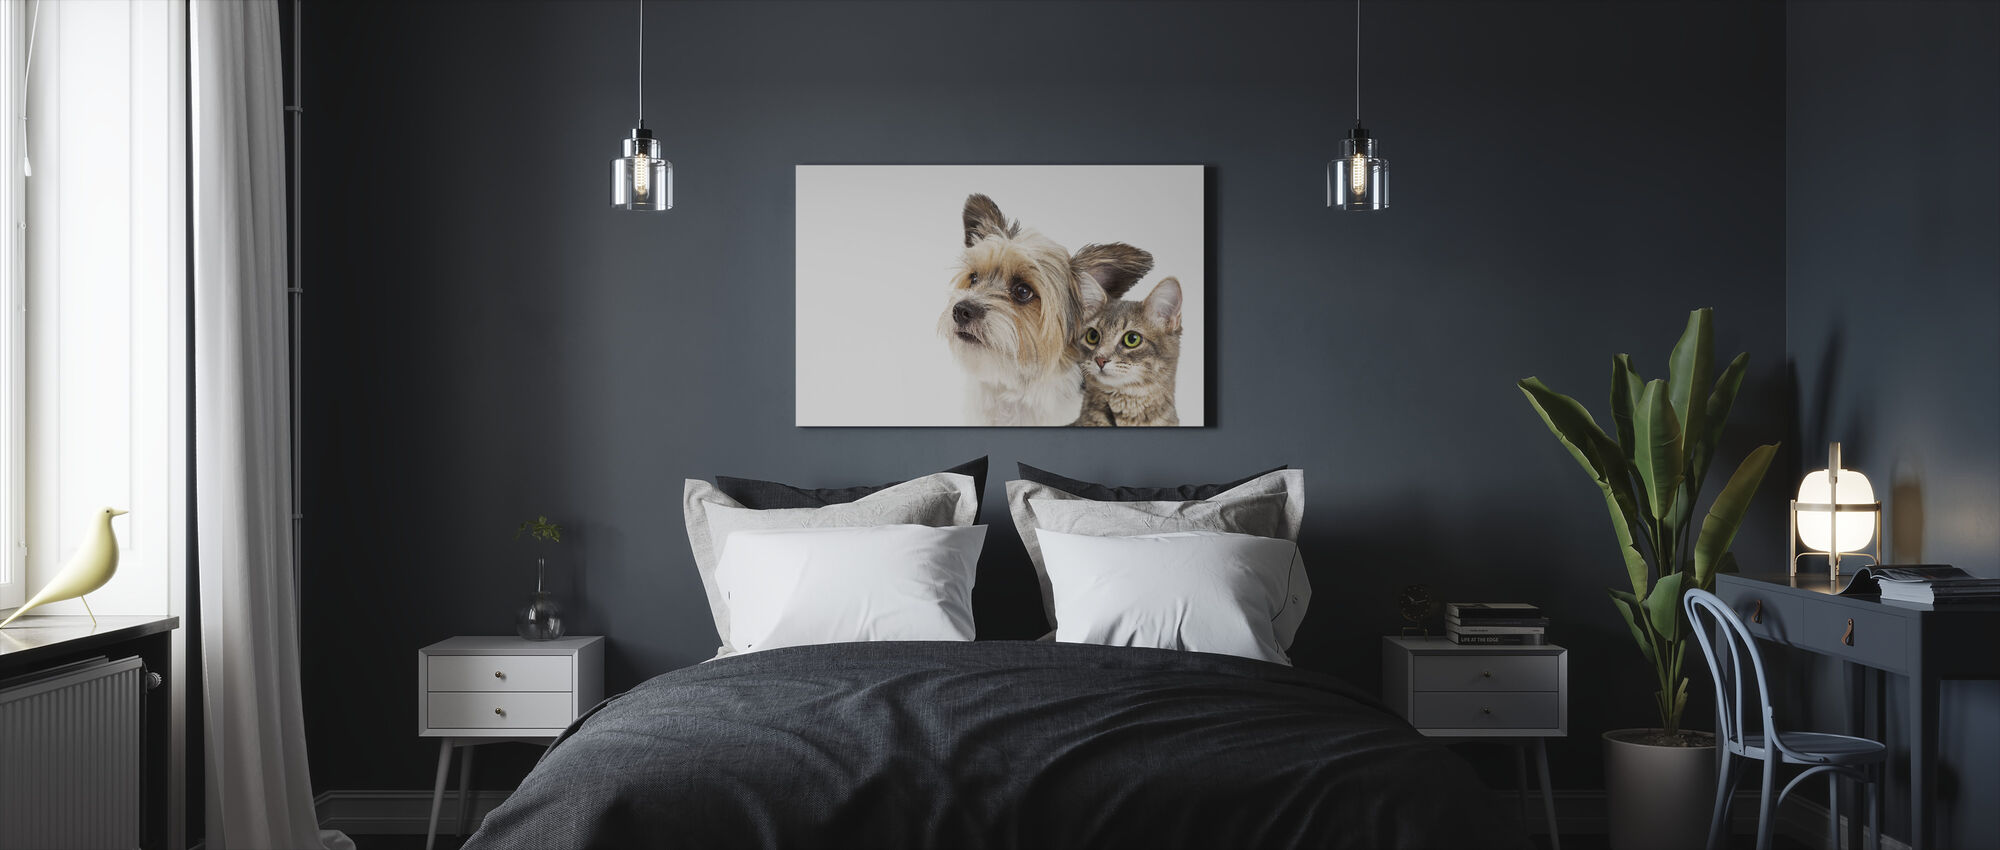 Cat and Dog - Canvas print - Bedroom